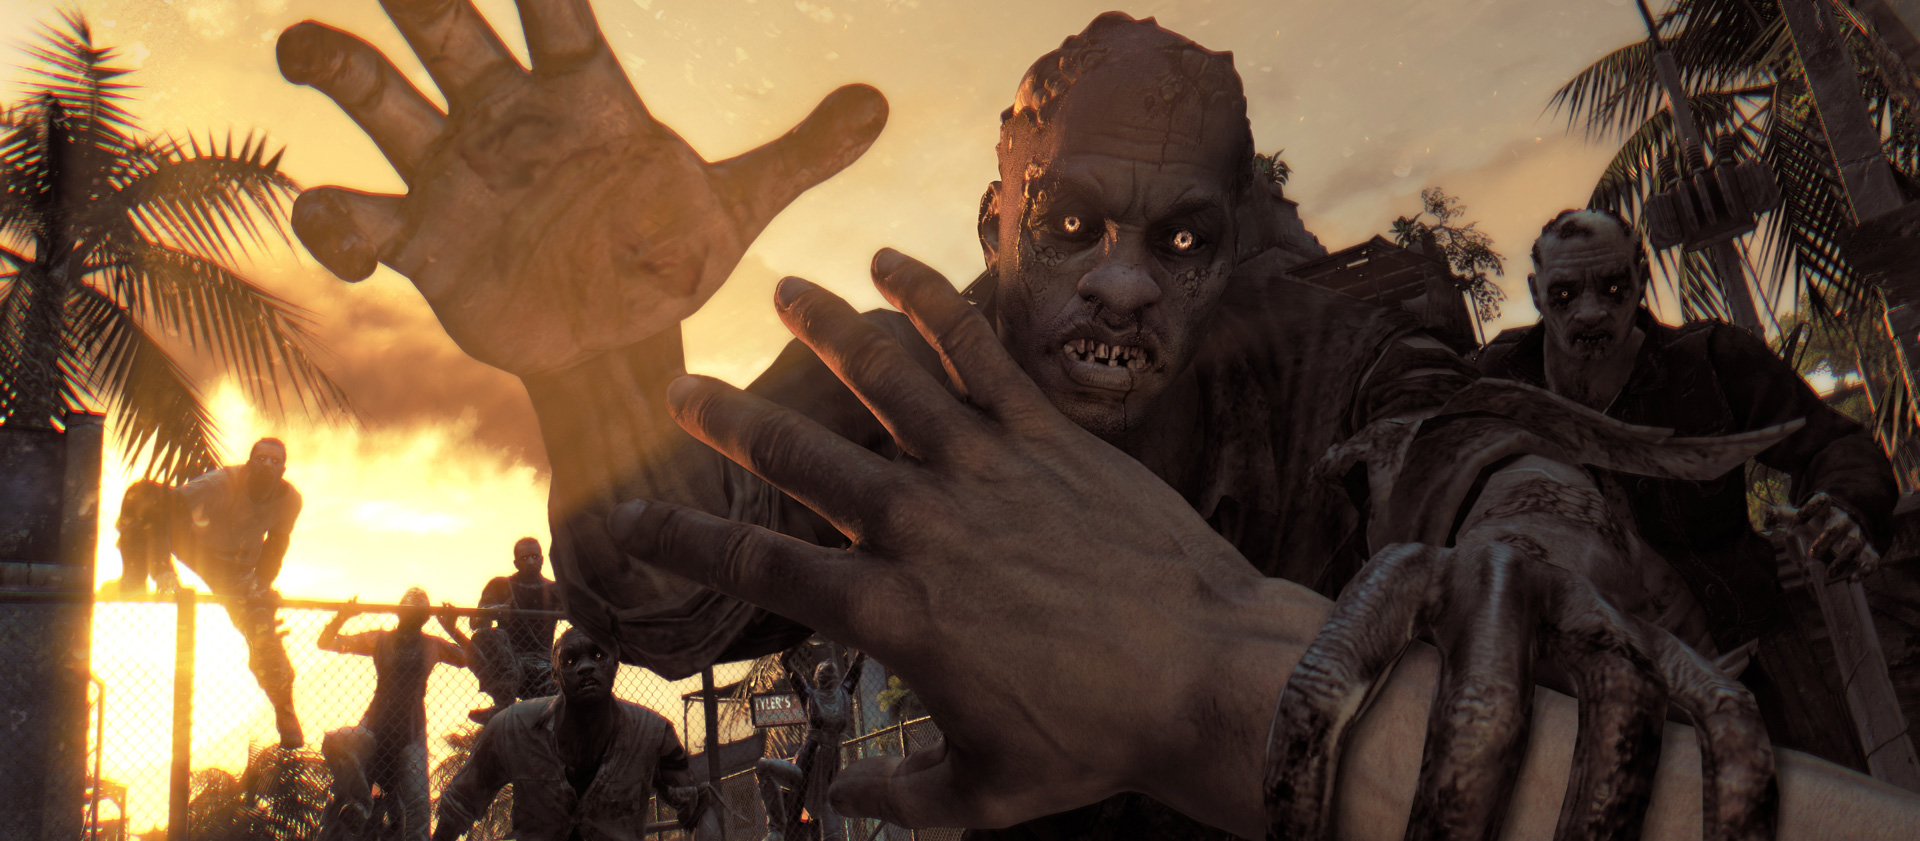 ANALIS DIS: DYING LIGHT